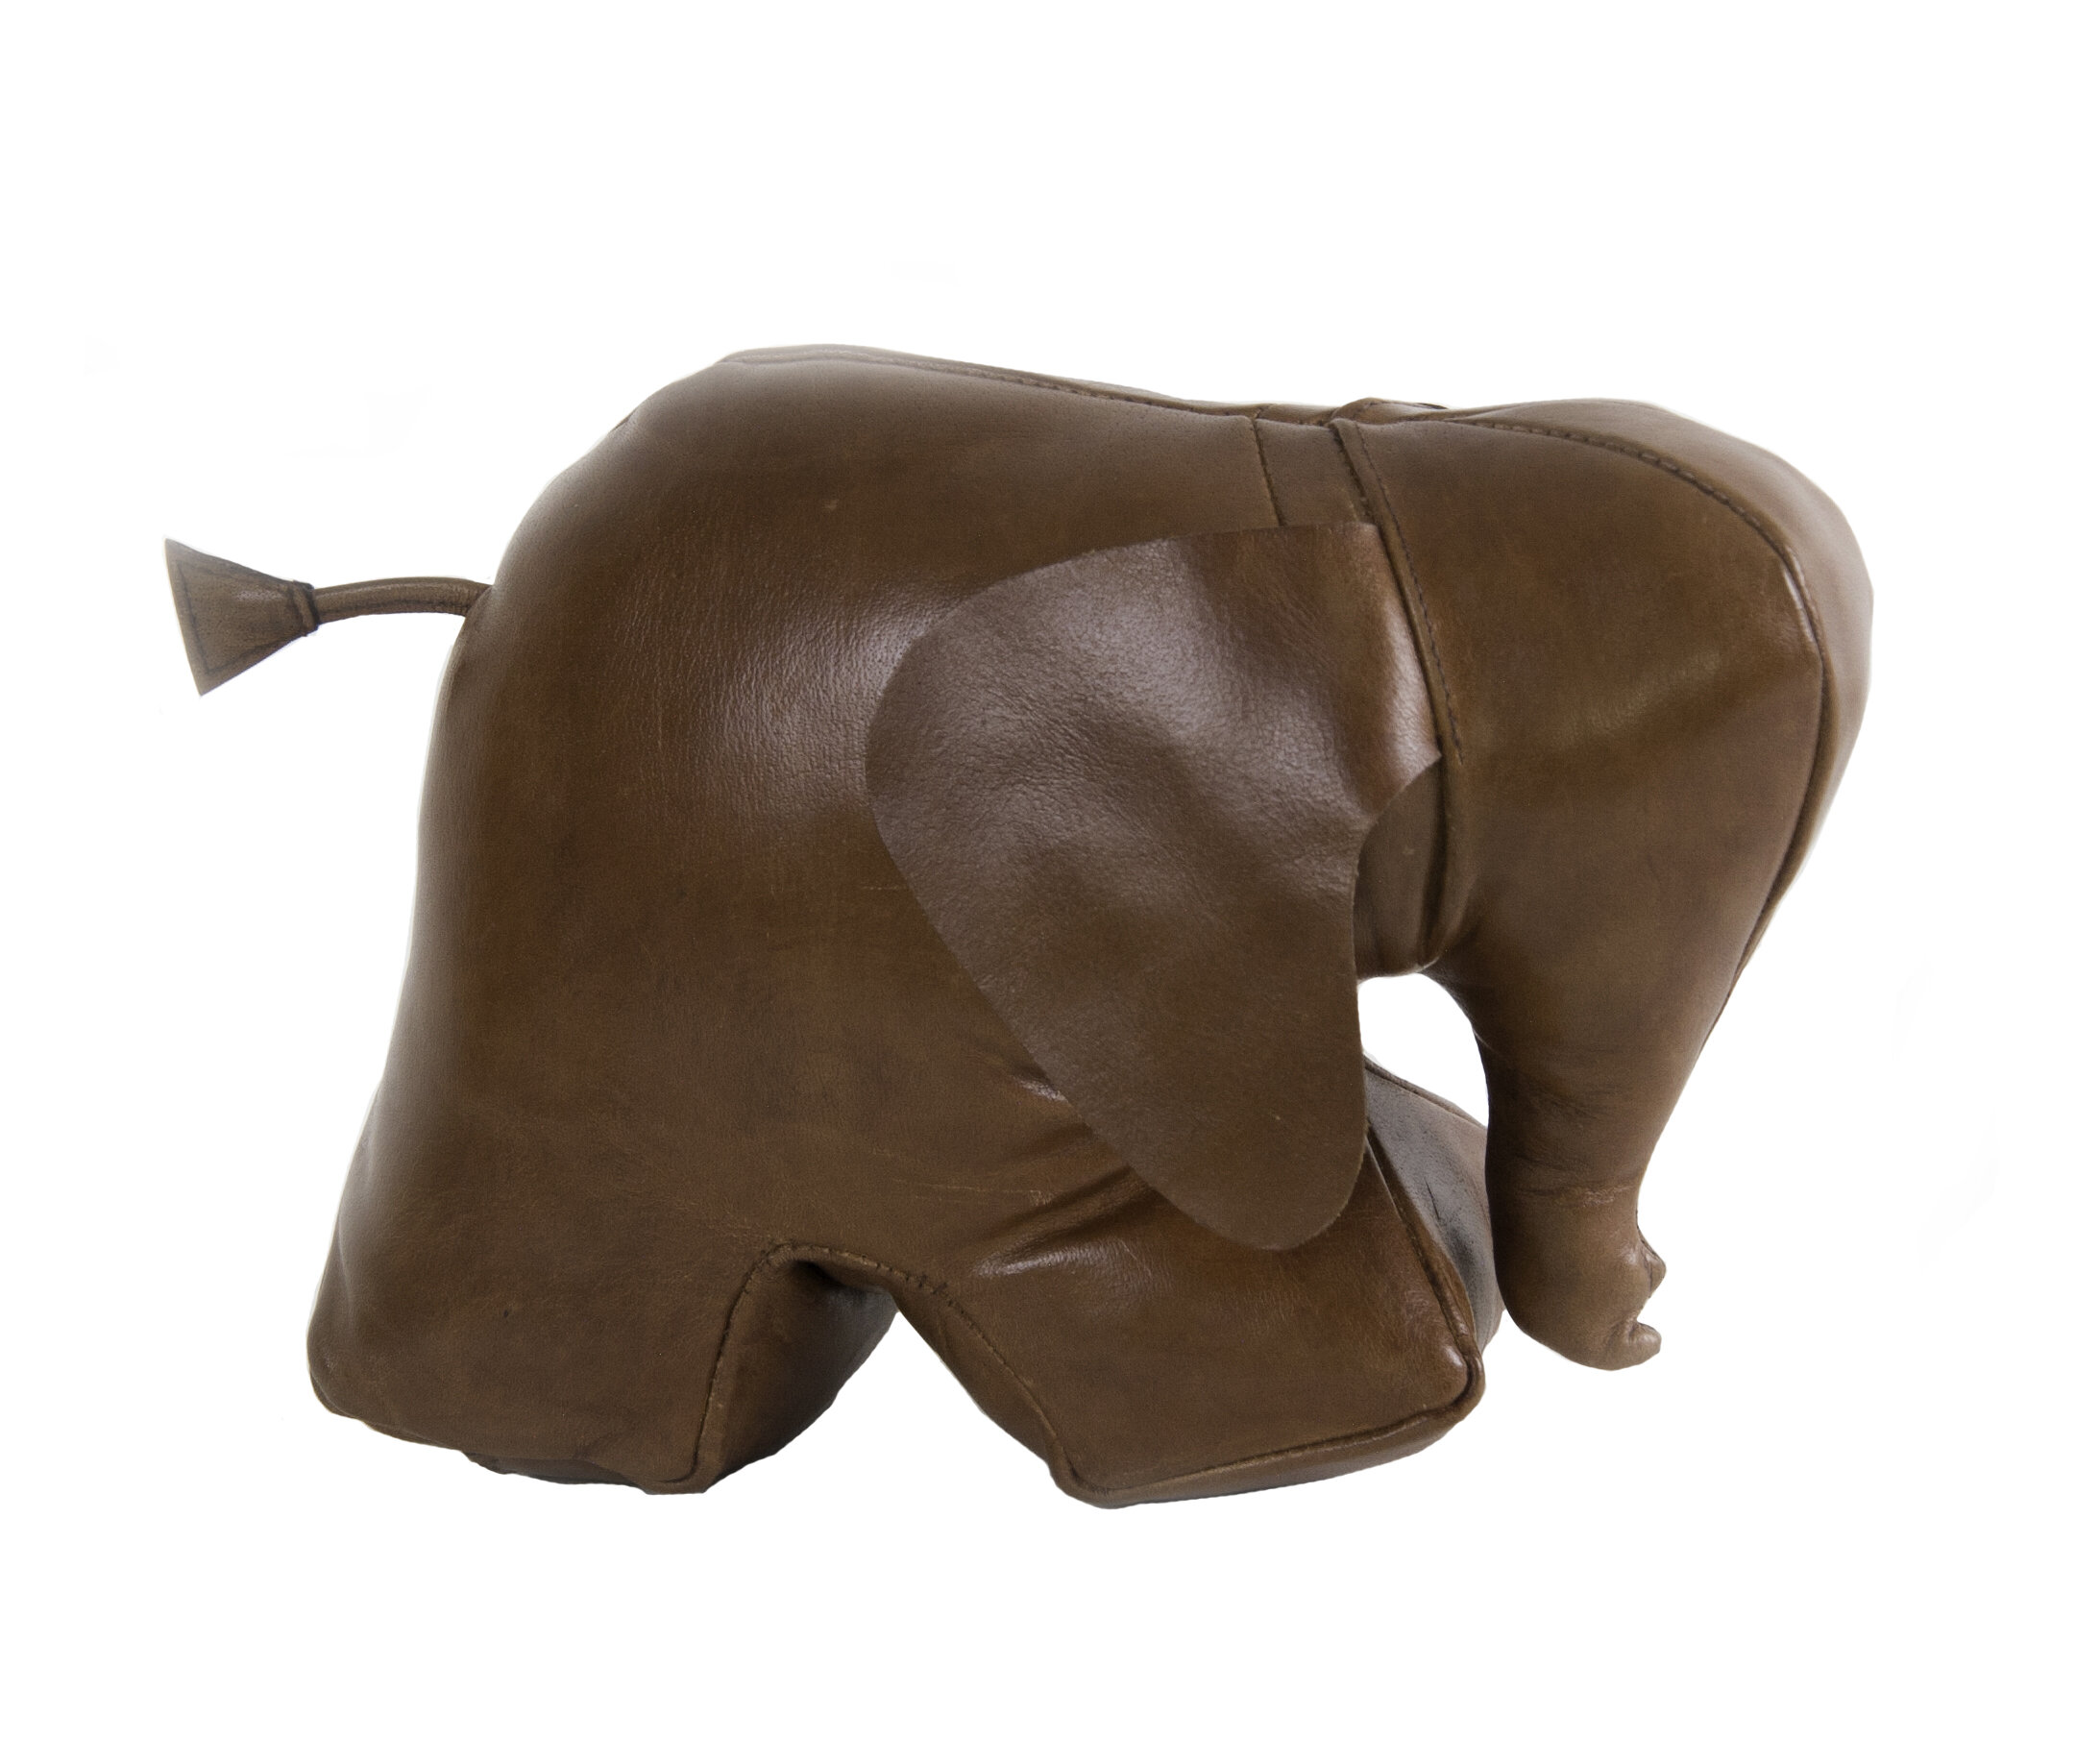 Authentic Models Elephant Leather Weighted Floor Stop Wayfair